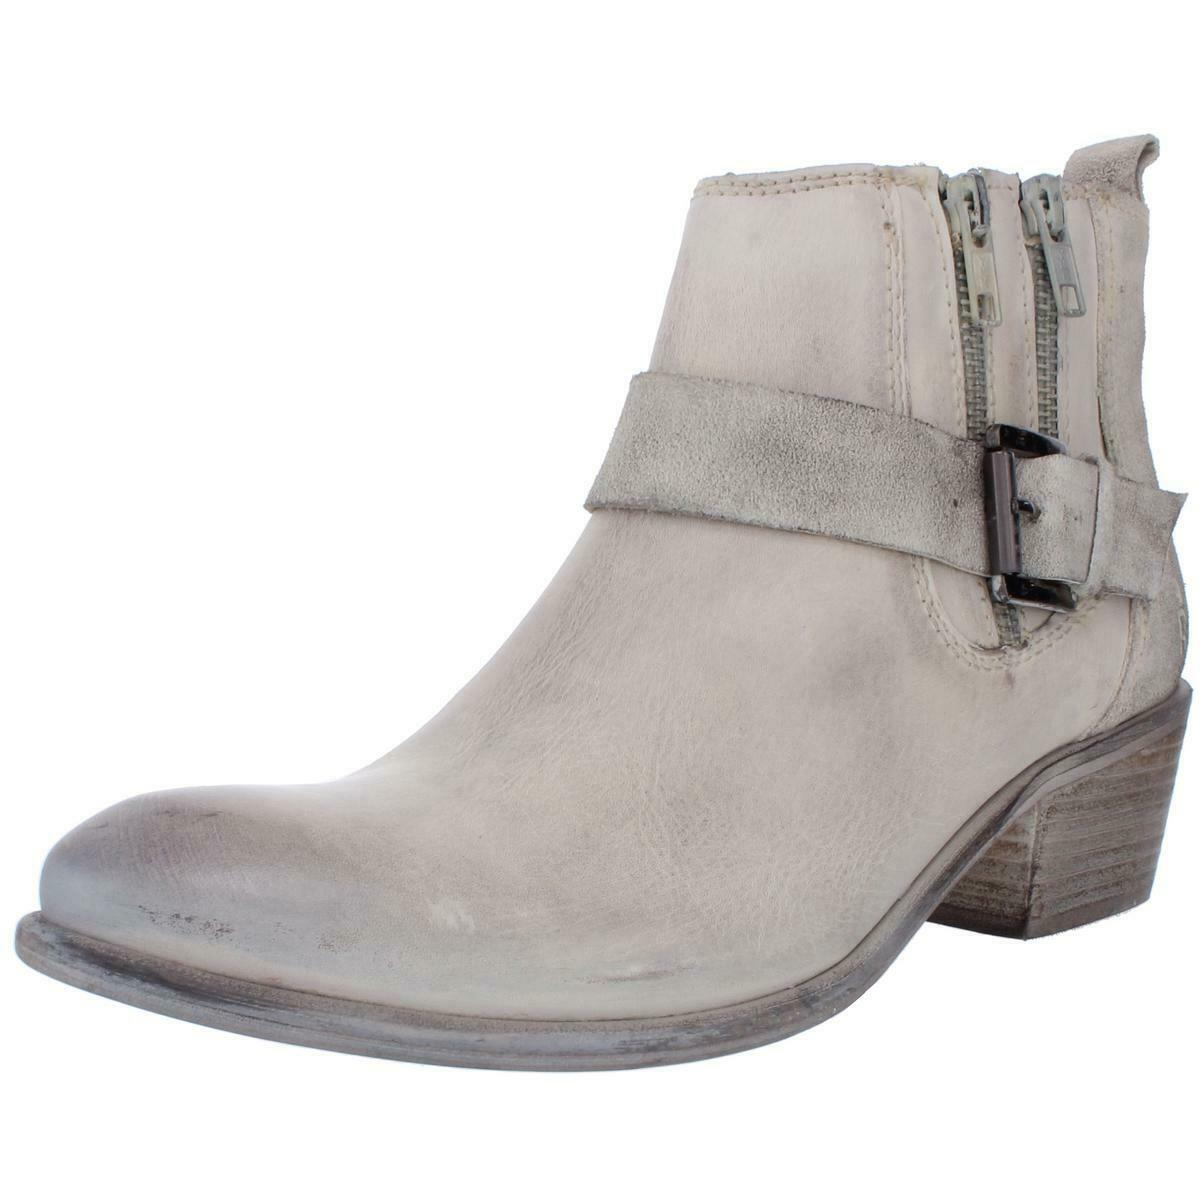 ROAN Womens Liza Ivory Leather Ankle Ankle Boots Shoes 10 Medium (B,M) BHFO 4733